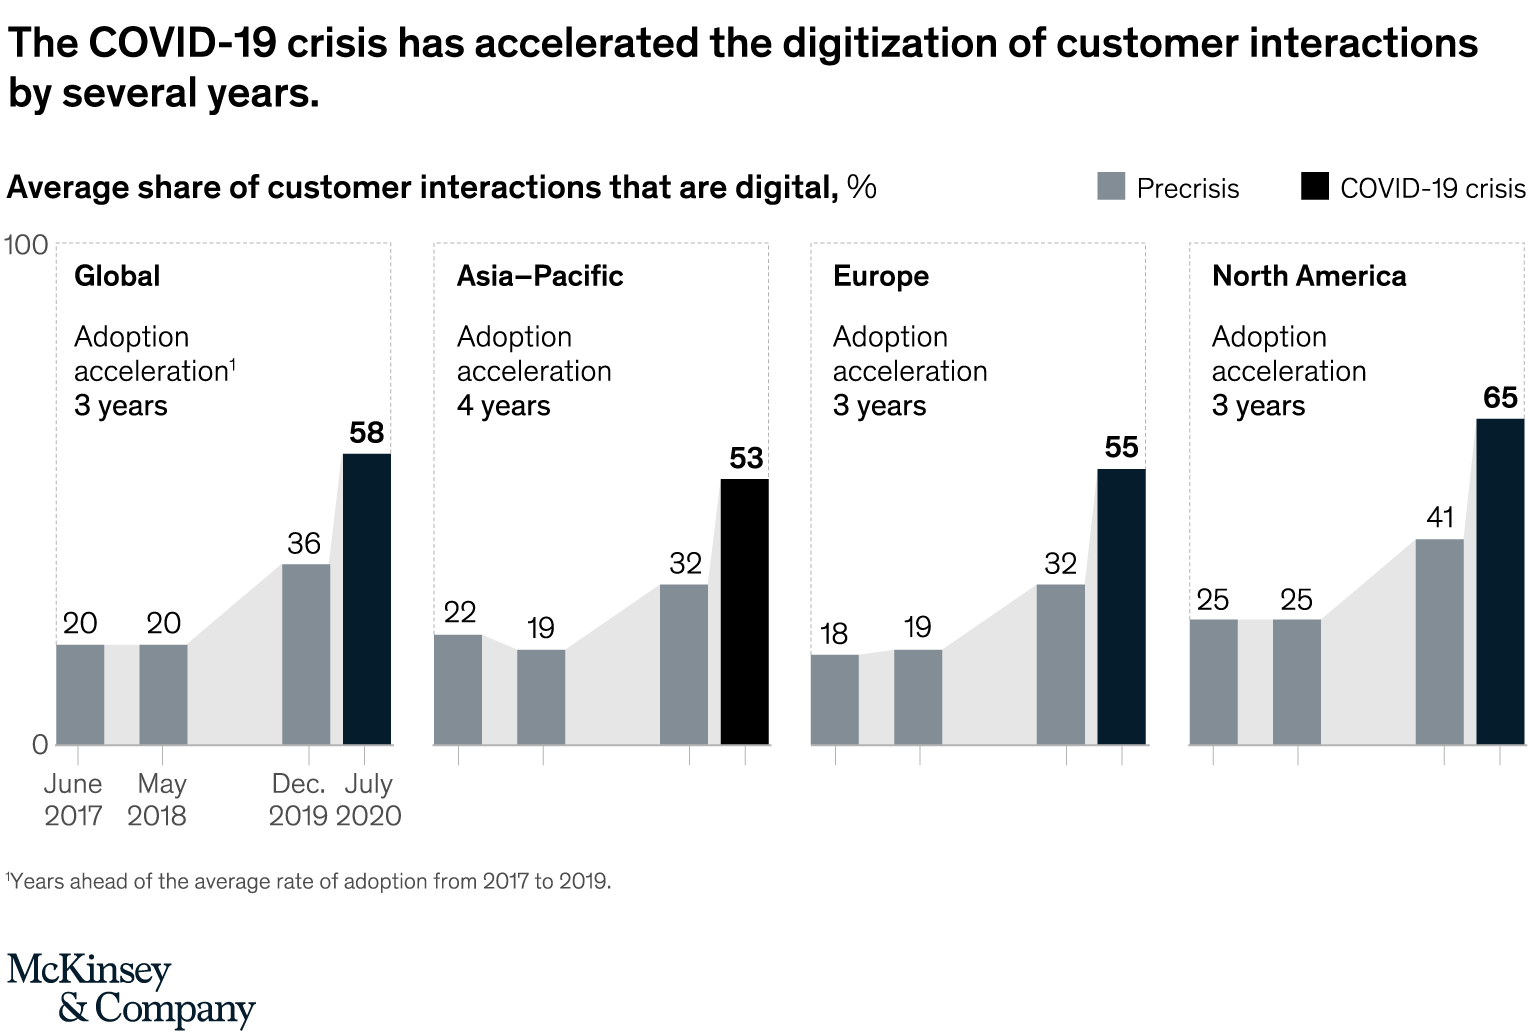 Average share of customer interactions that are digital, %, McKinsey